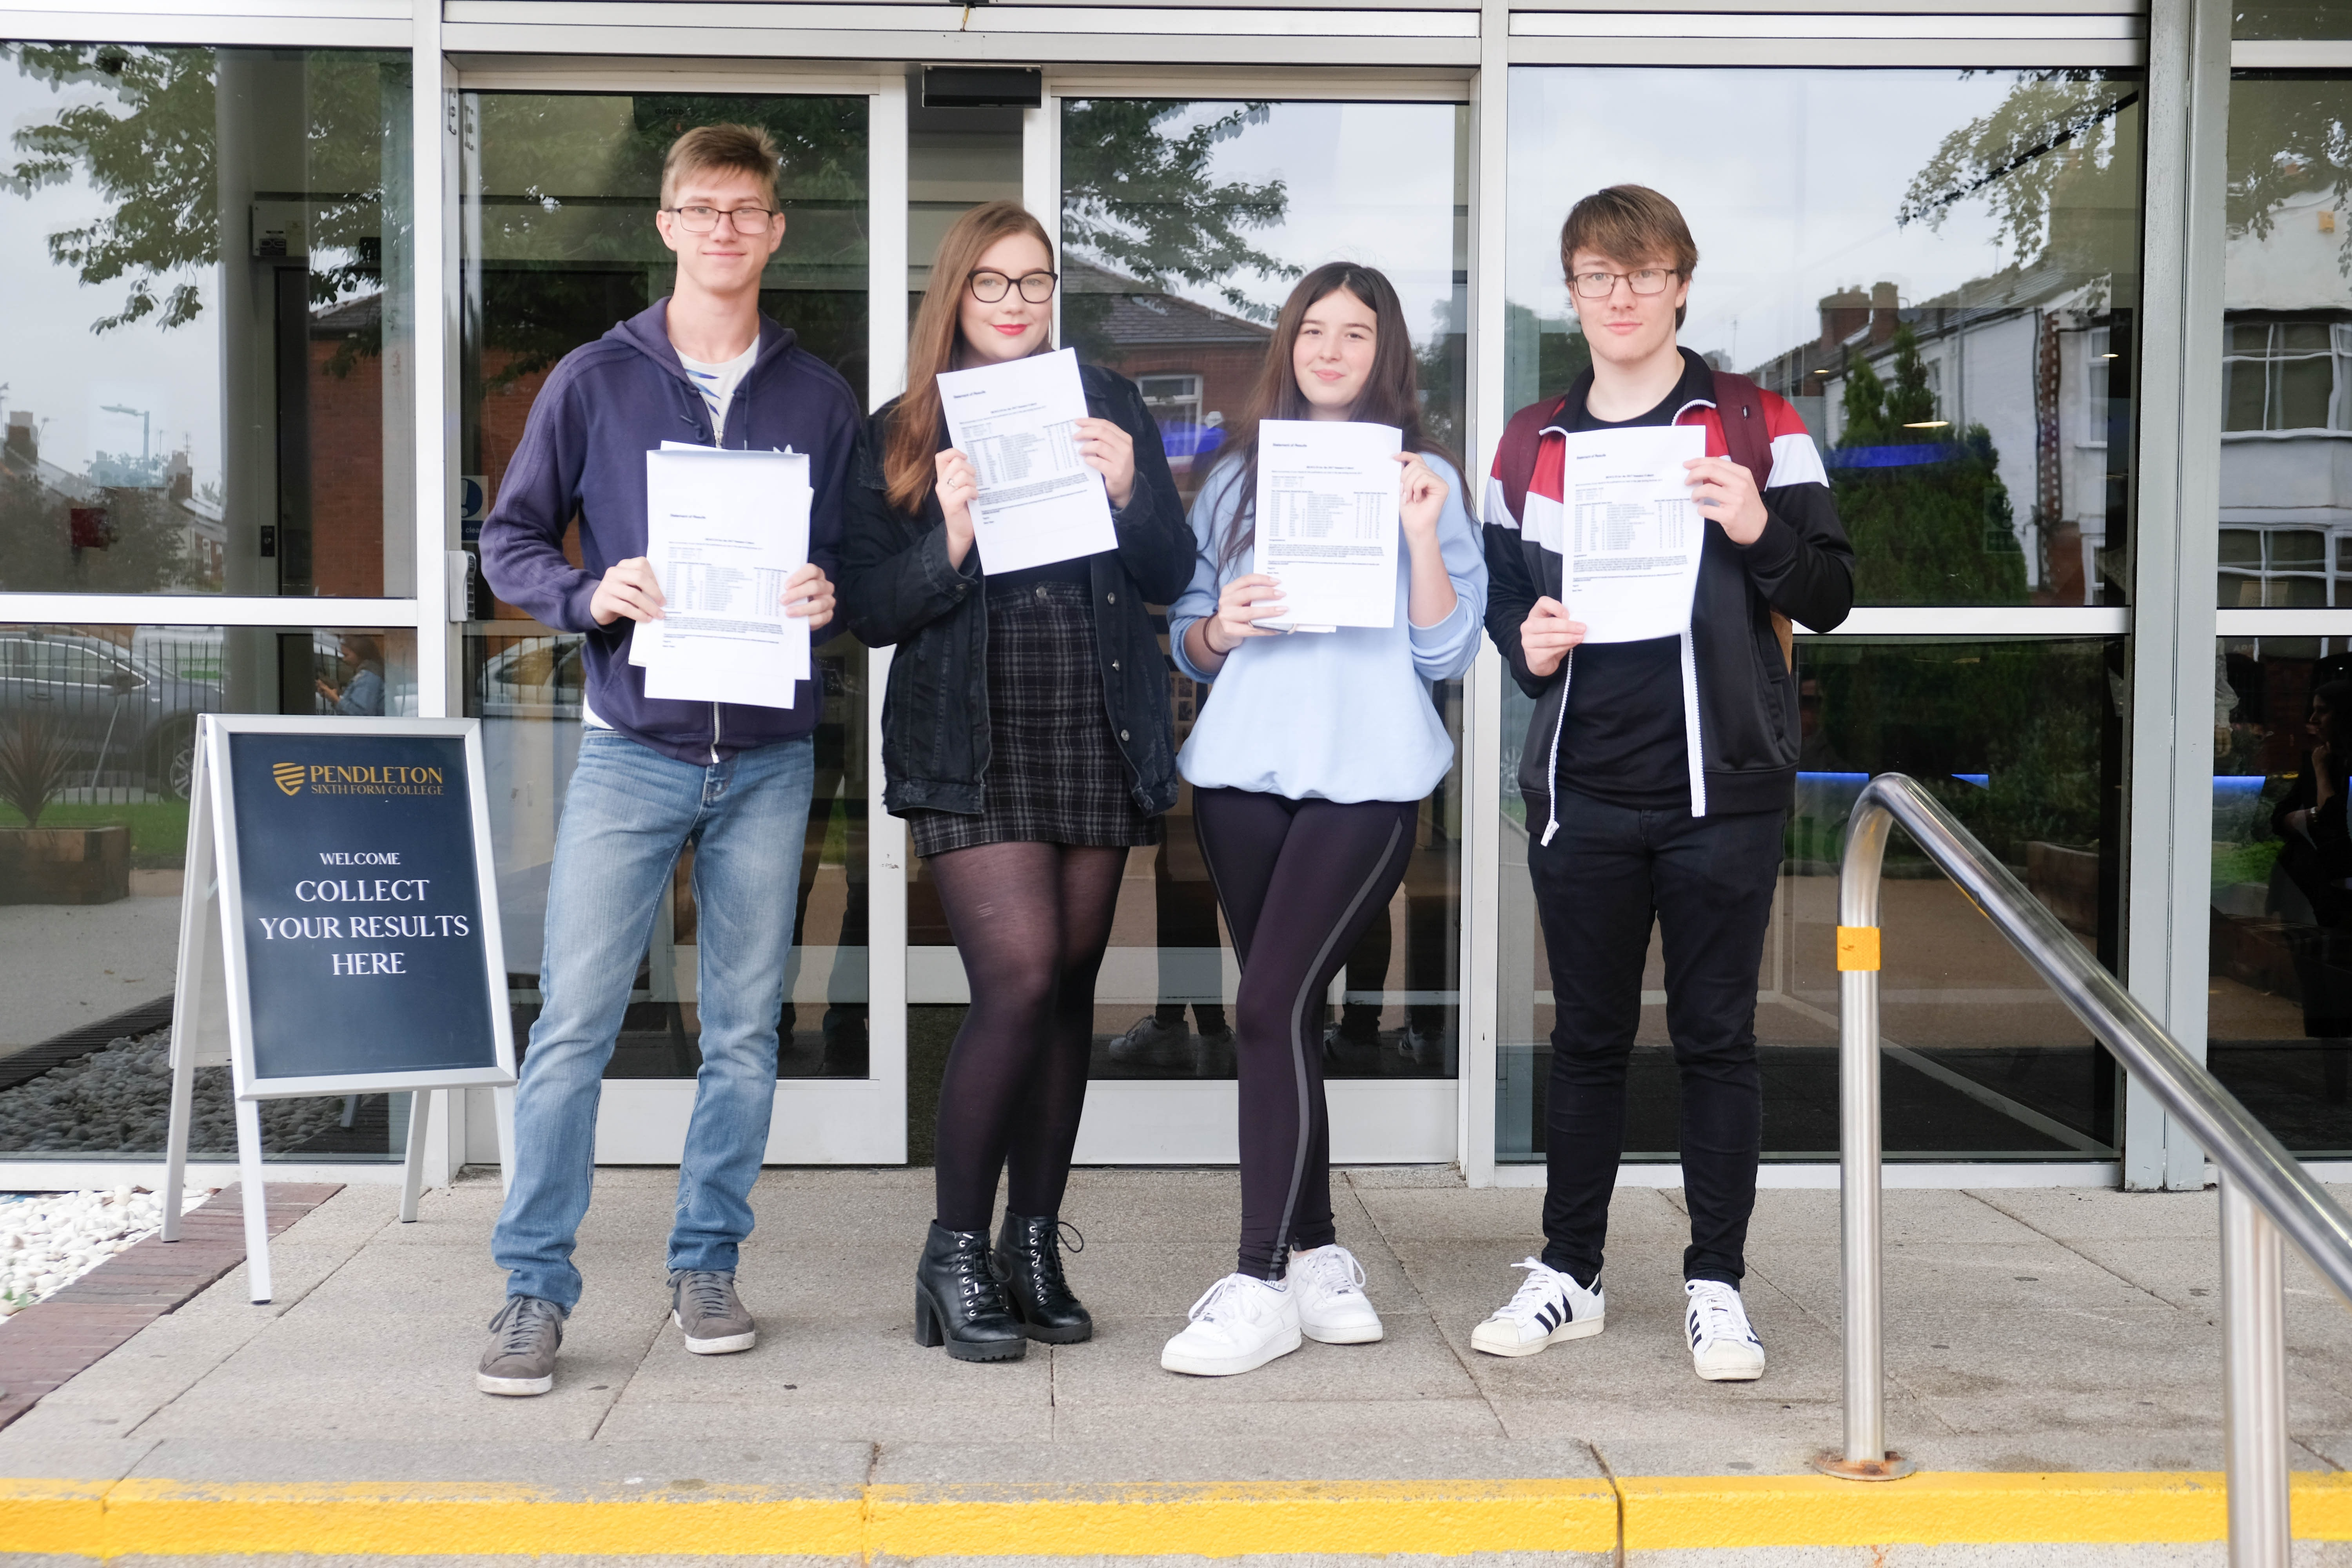 99% A-level pass rate for Pendleton Sixth Form College